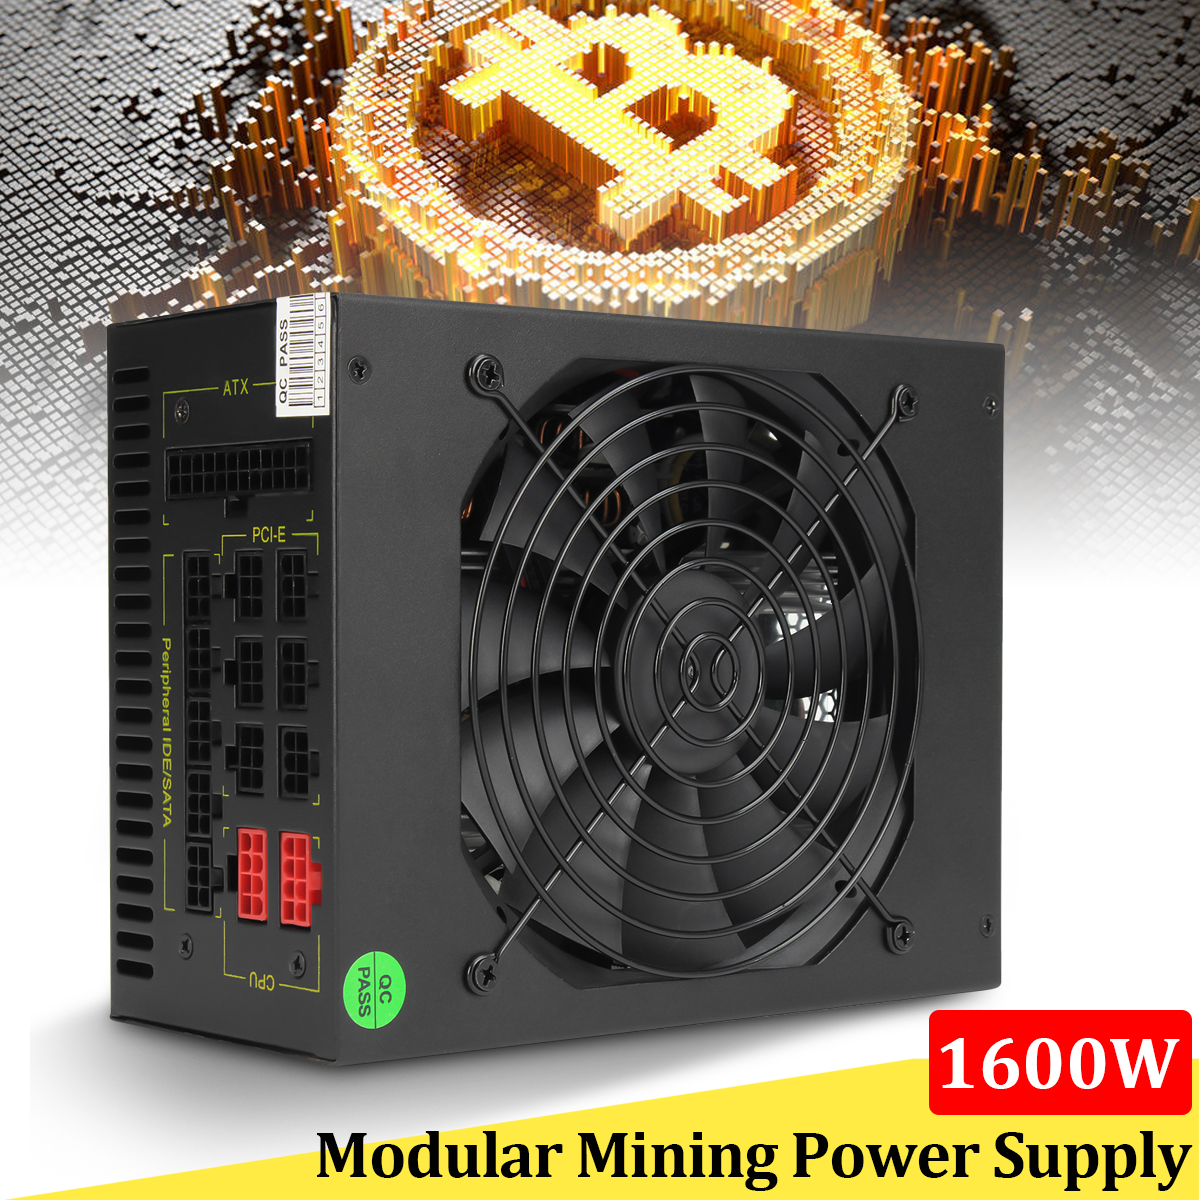 1600W Modular Mining Power Supply GPU For Bitcoin Miner Eth Rig S7 S9 L3+ D3 High Quality computer Power Supply For BTC цена